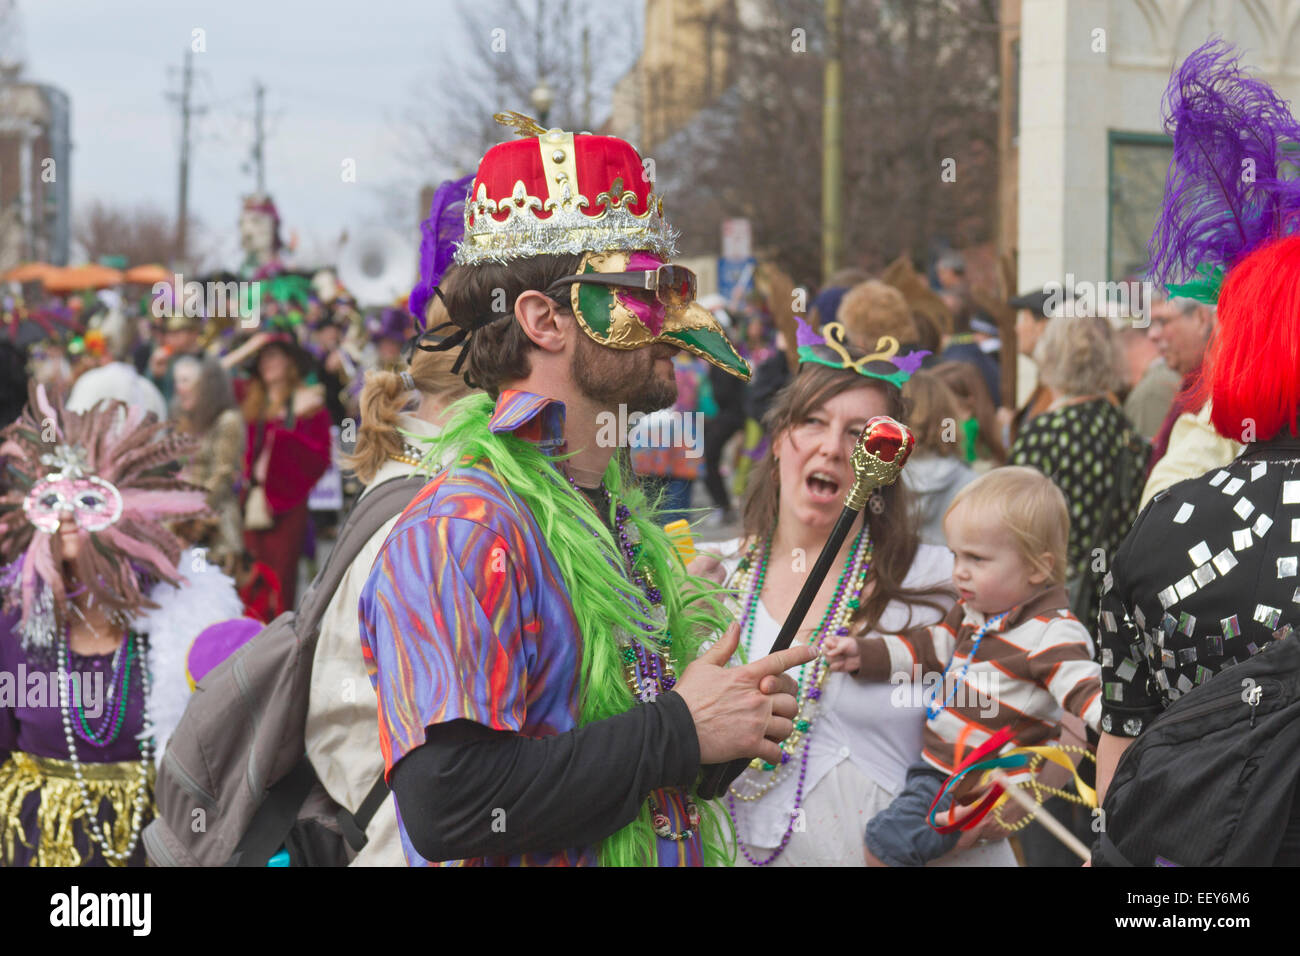 People wear costumes and colorful masks in the annual Mardi Gras parade in Asheville NC & People wear costumes and colorful masks in the annual Mardi Gras ...